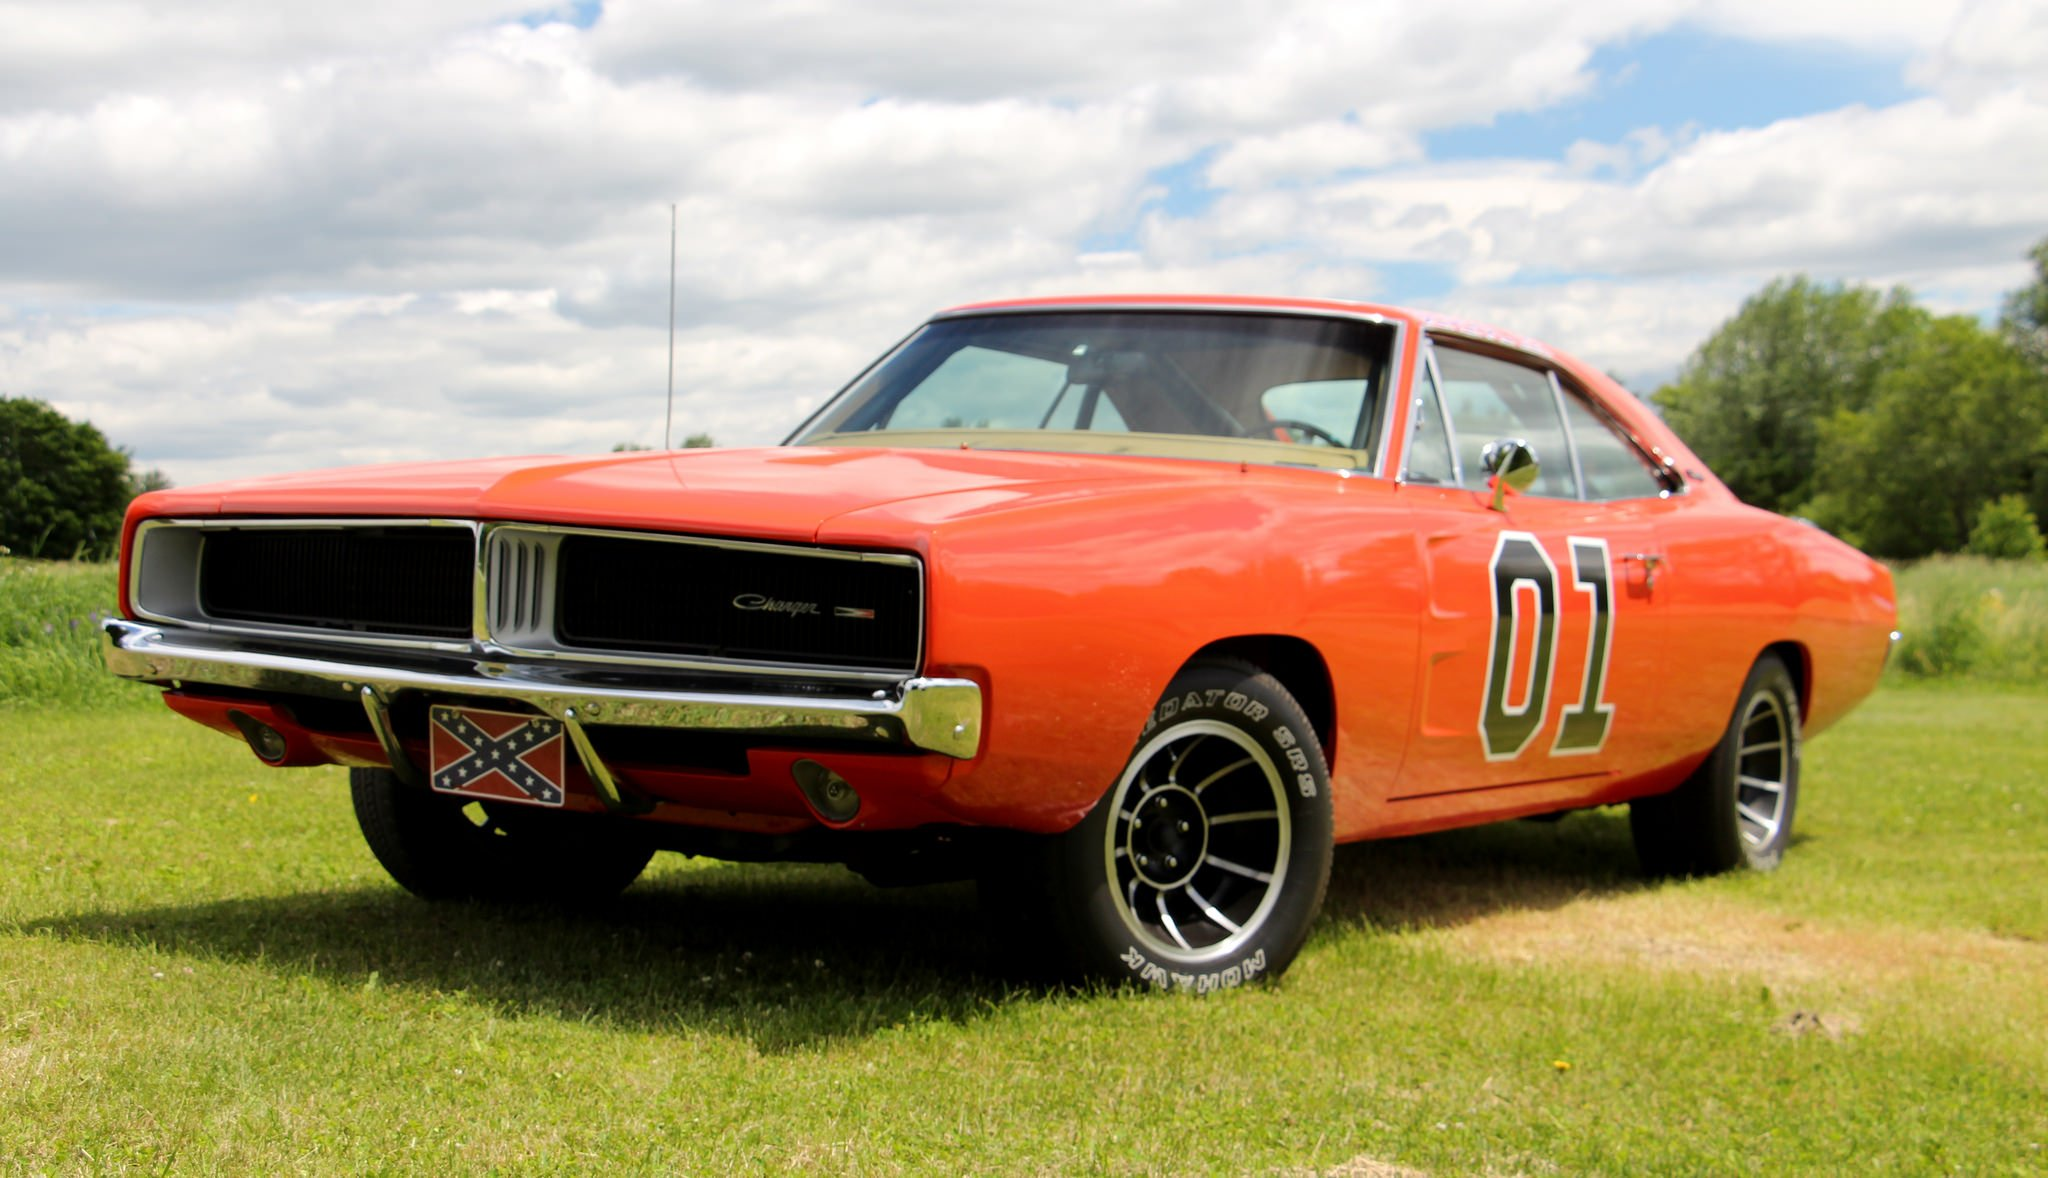 1969 Dodge Charger General Lee Classic Muscle Car For Sale: 1969 Charger Classic Dodge General Hot Lee Mopar Muscle